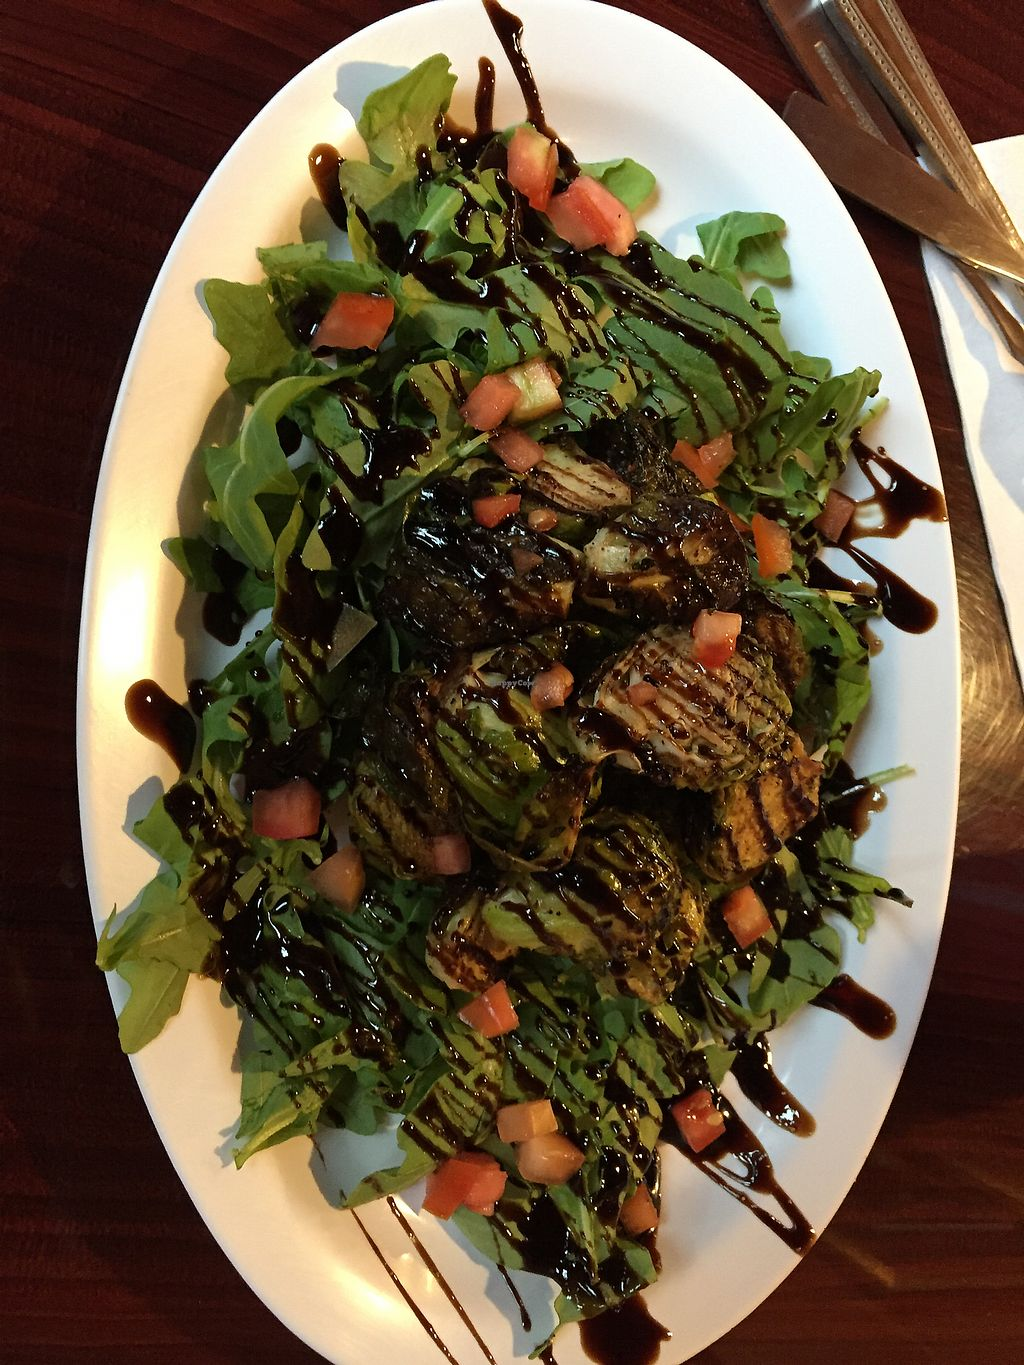 """Photo of The Hummus House   by <a href=""""/members/profile/jerseygirlinpa"""">jerseygirlinpa</a> <br/>Roasted Brussels sprouts balsamic  <br/> September 4, 2017  - <a href='/contact/abuse/image/73626/300704'>Report</a>"""